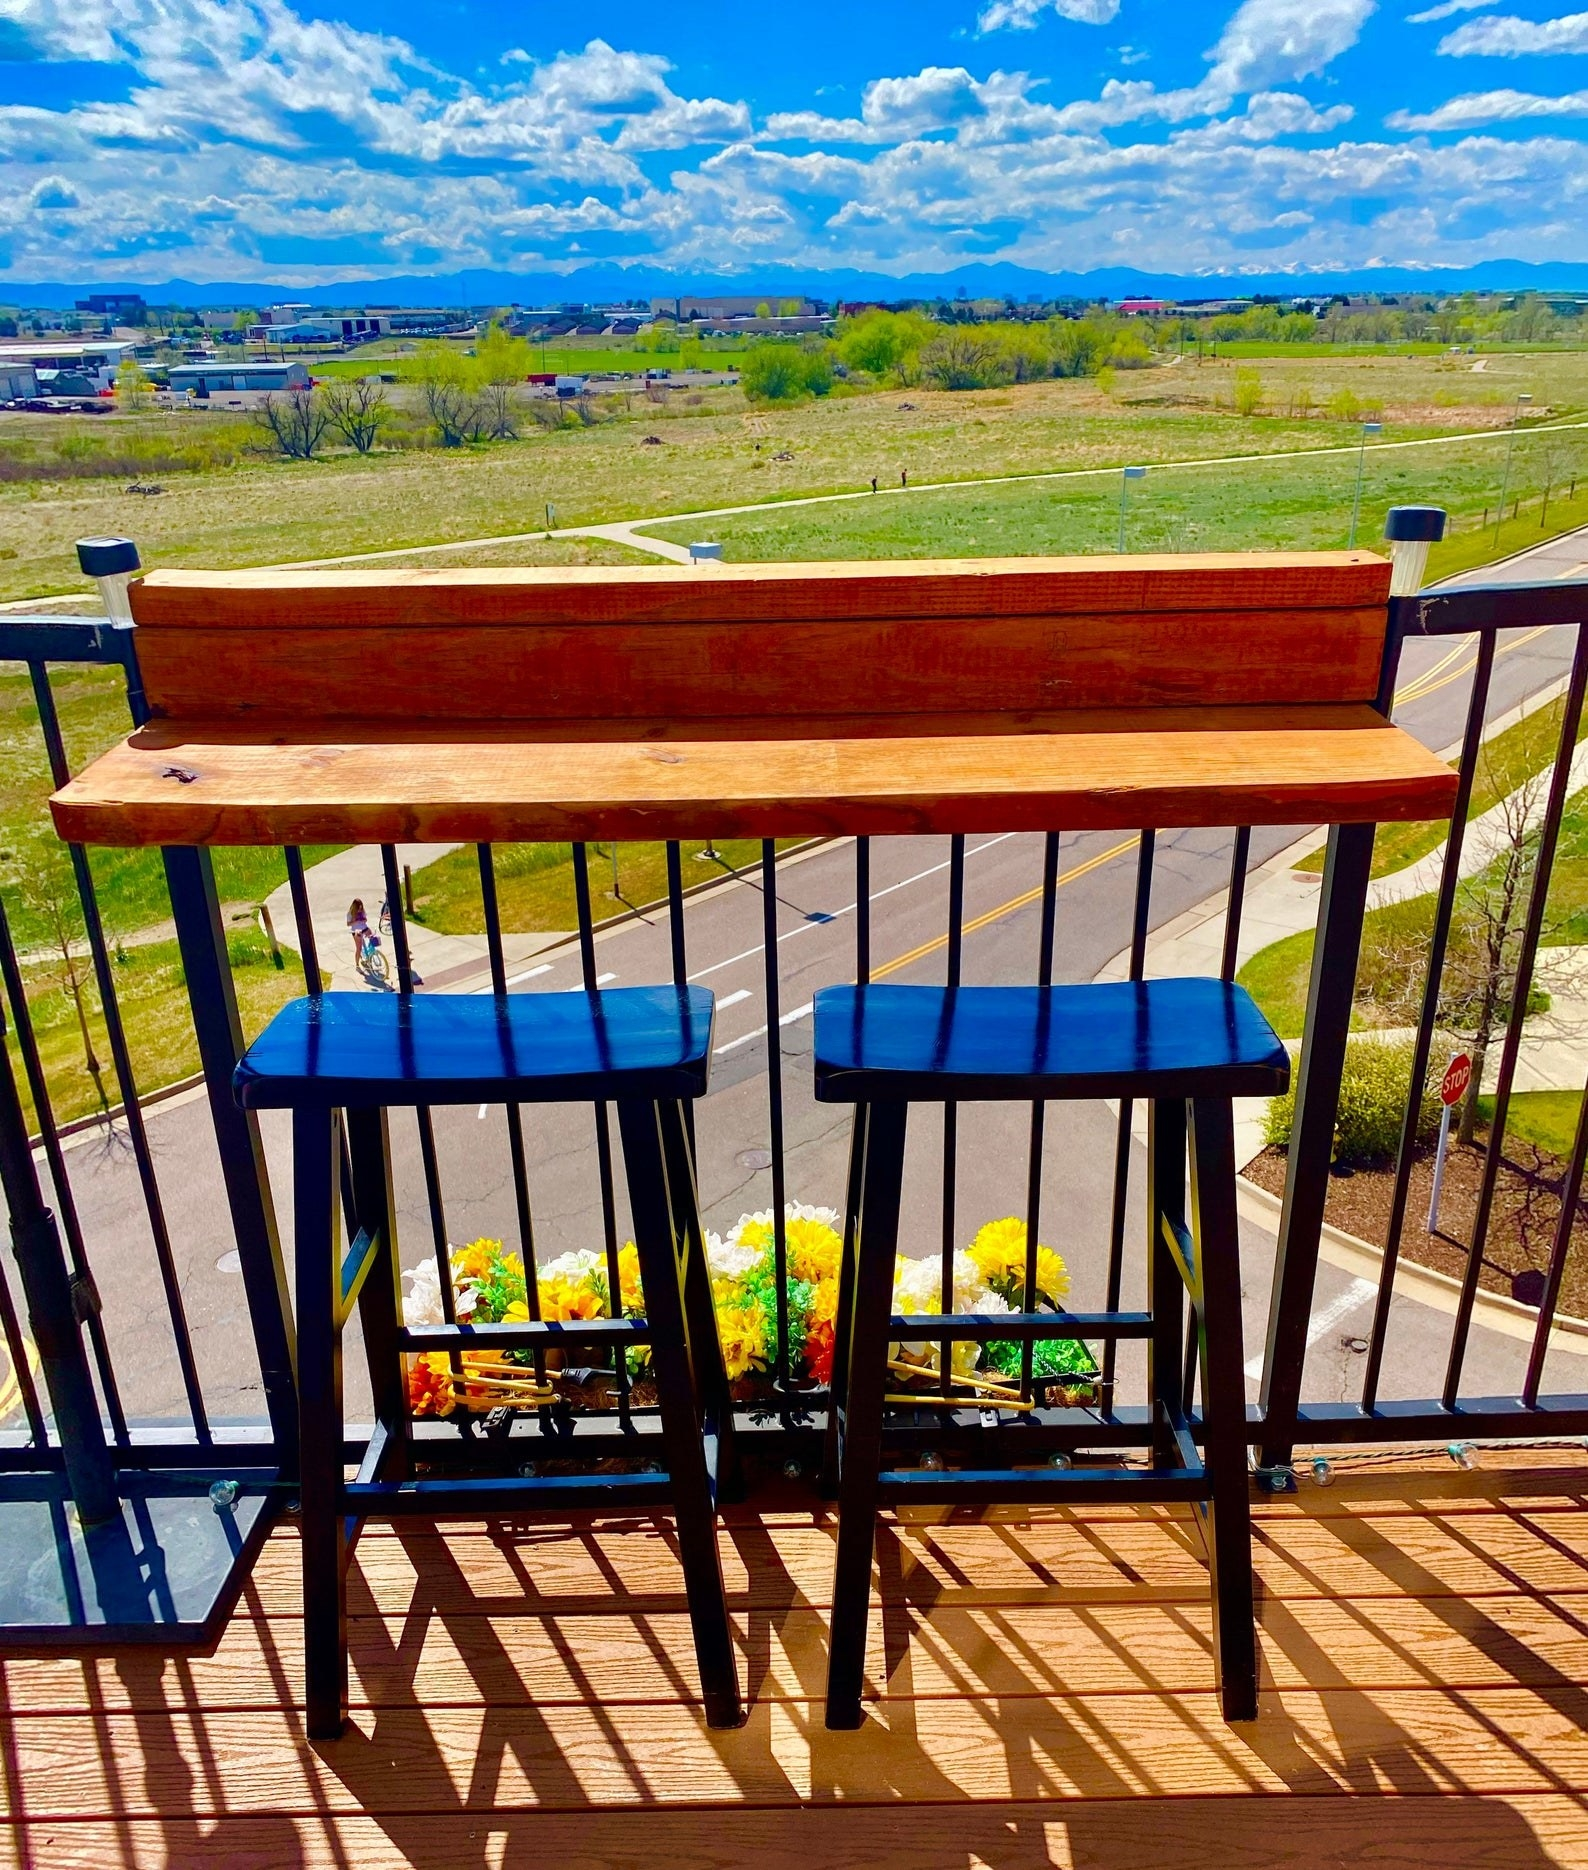 The wood bar attached to balcony railing